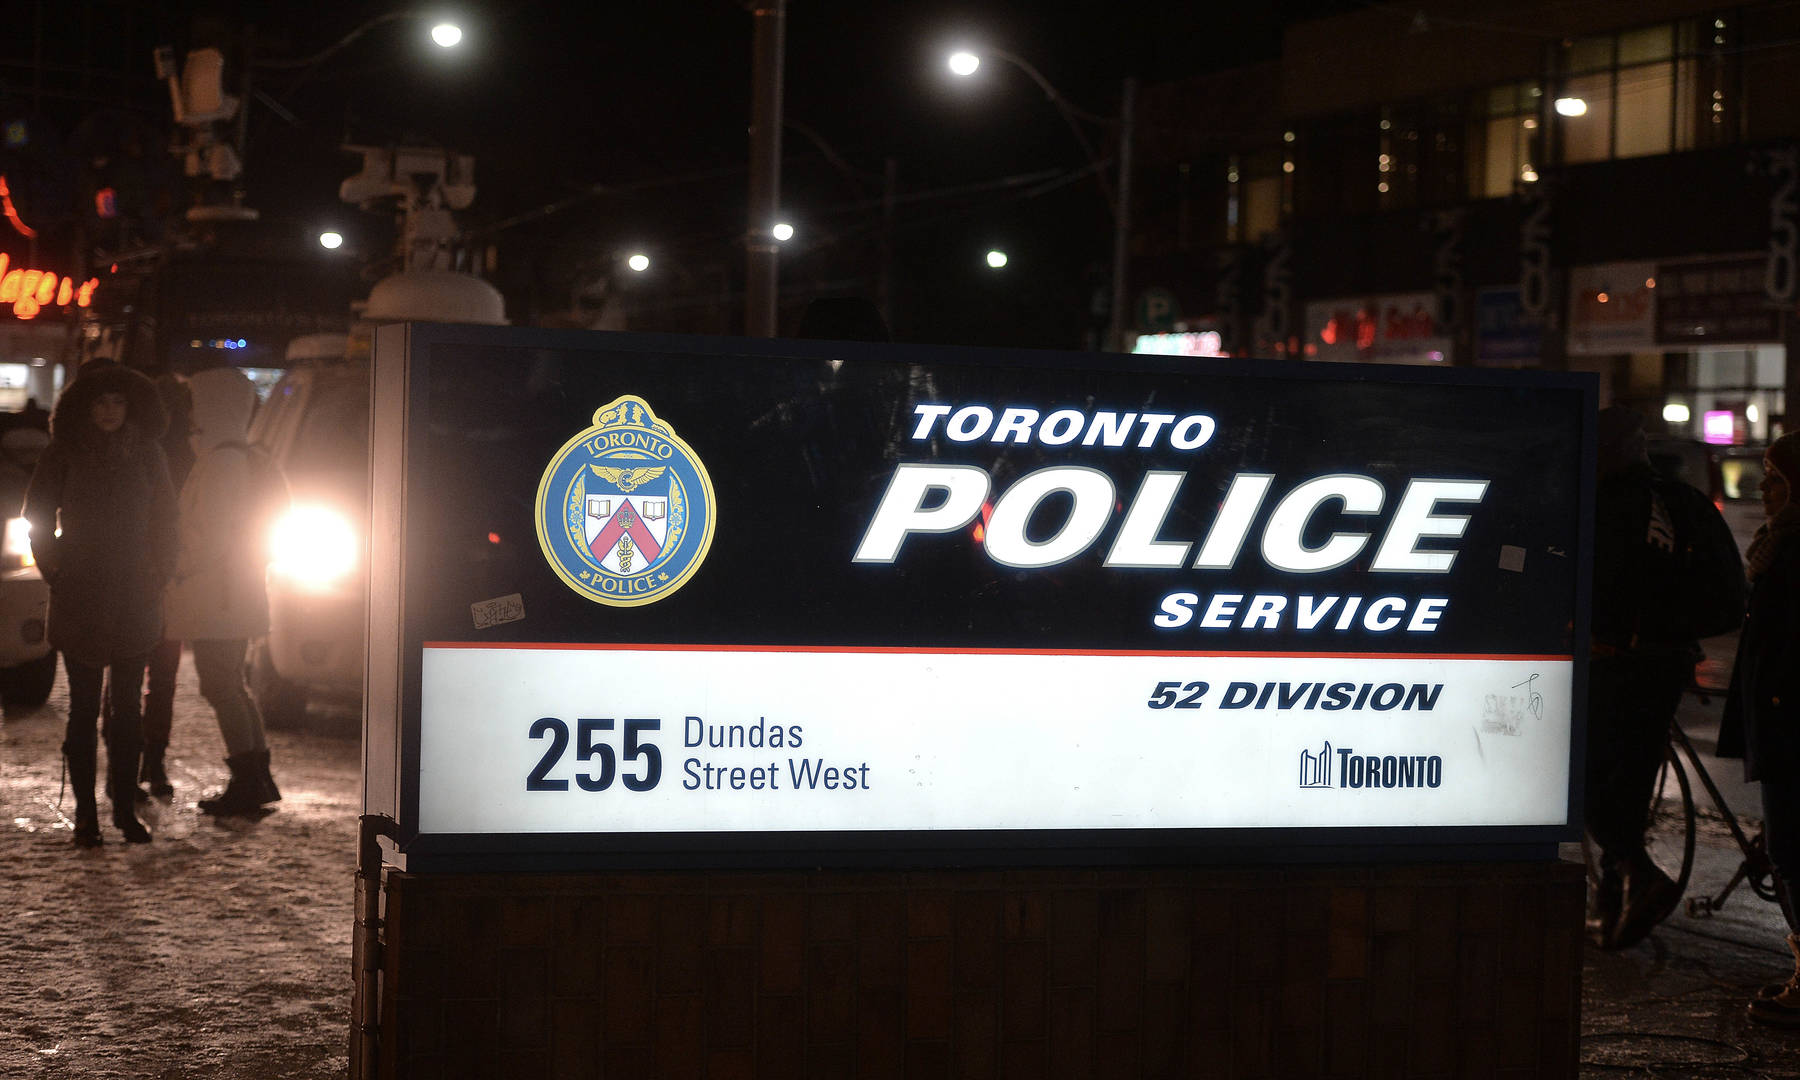 SIU investigating After Woman Falls To Her Death In Toronto